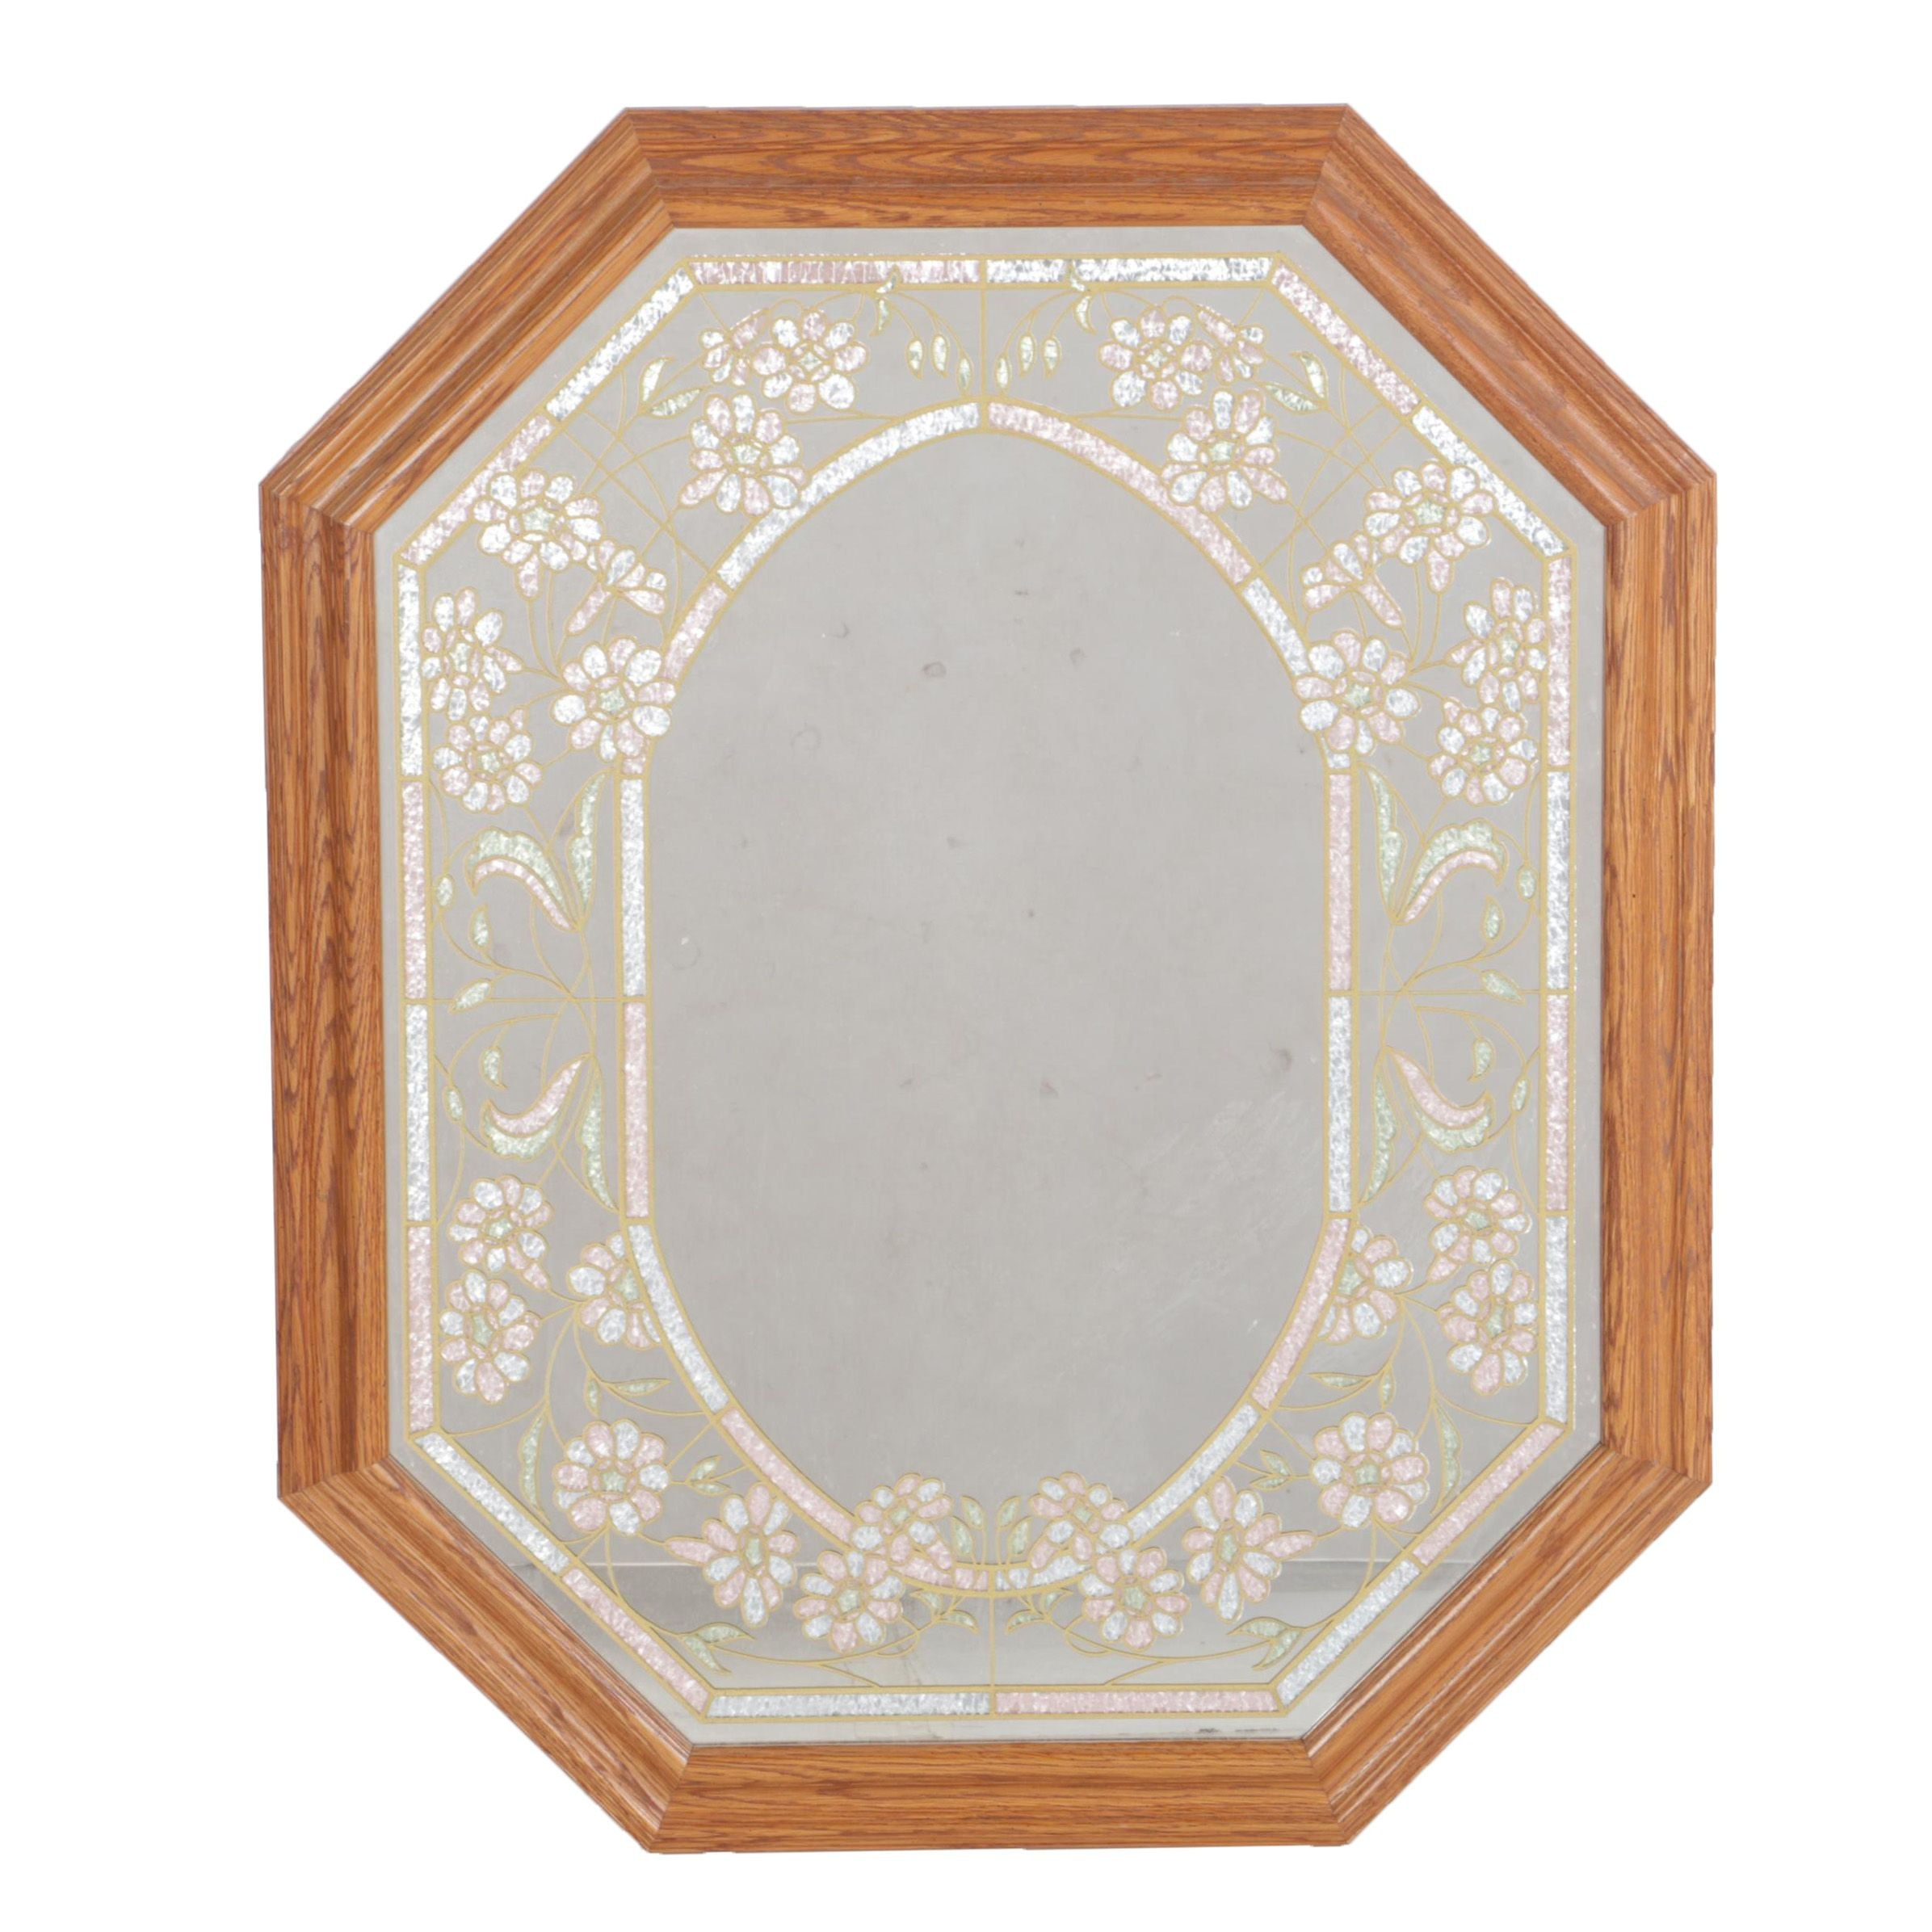 Wood Framed Wall Mirror with Floral Border